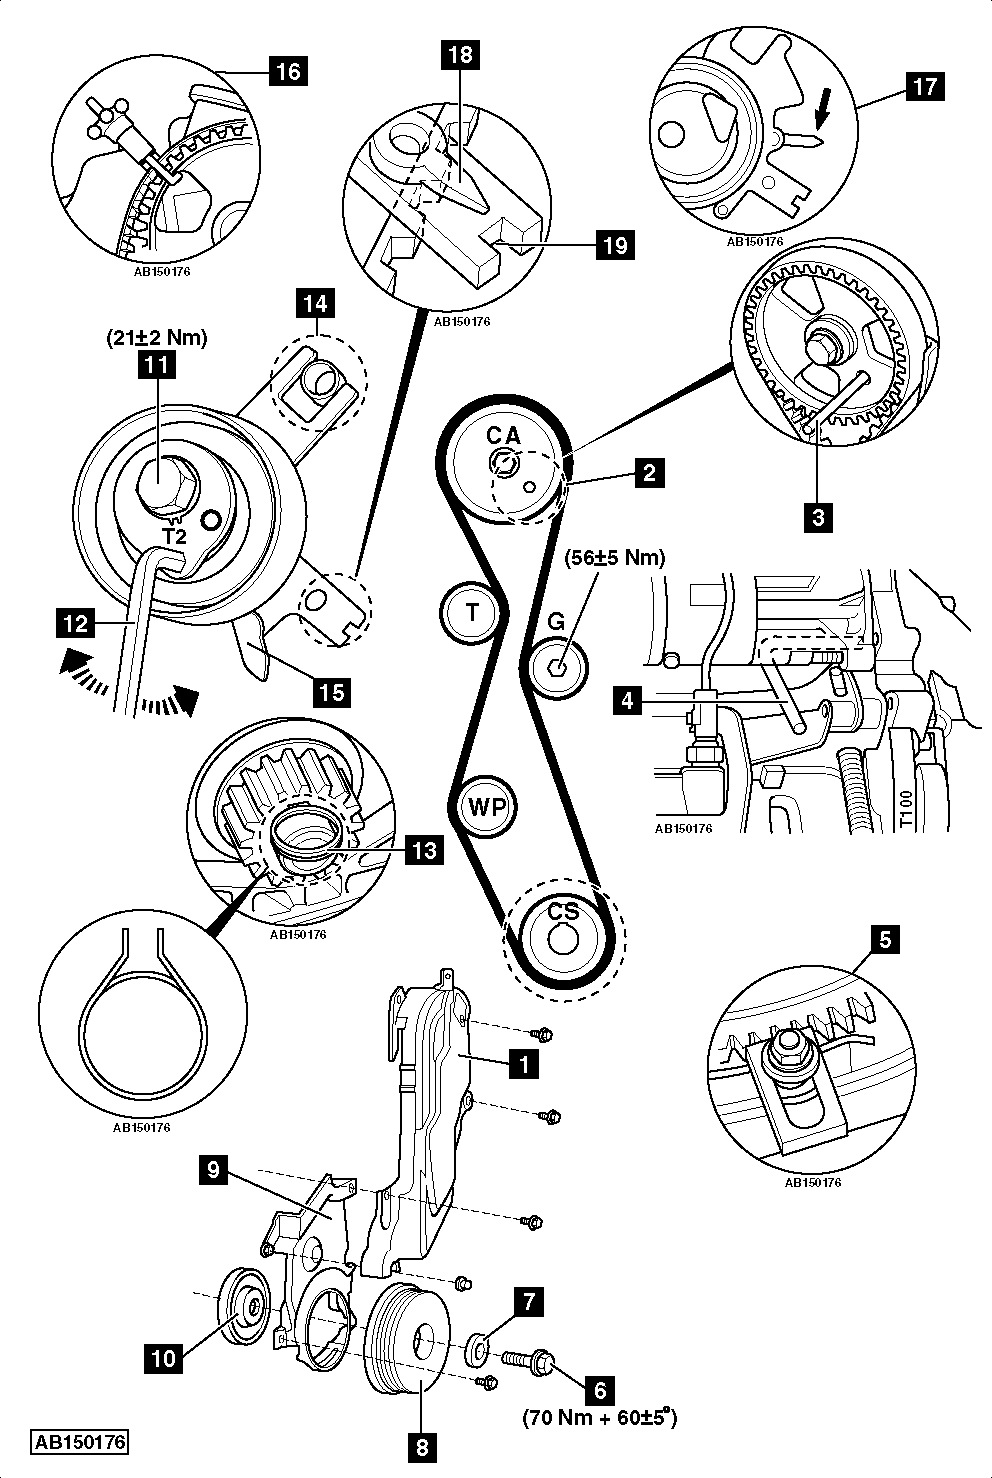 wds bmw wiring diagrams online wds discover your wiring diagram bmw k1300s wiring diagram